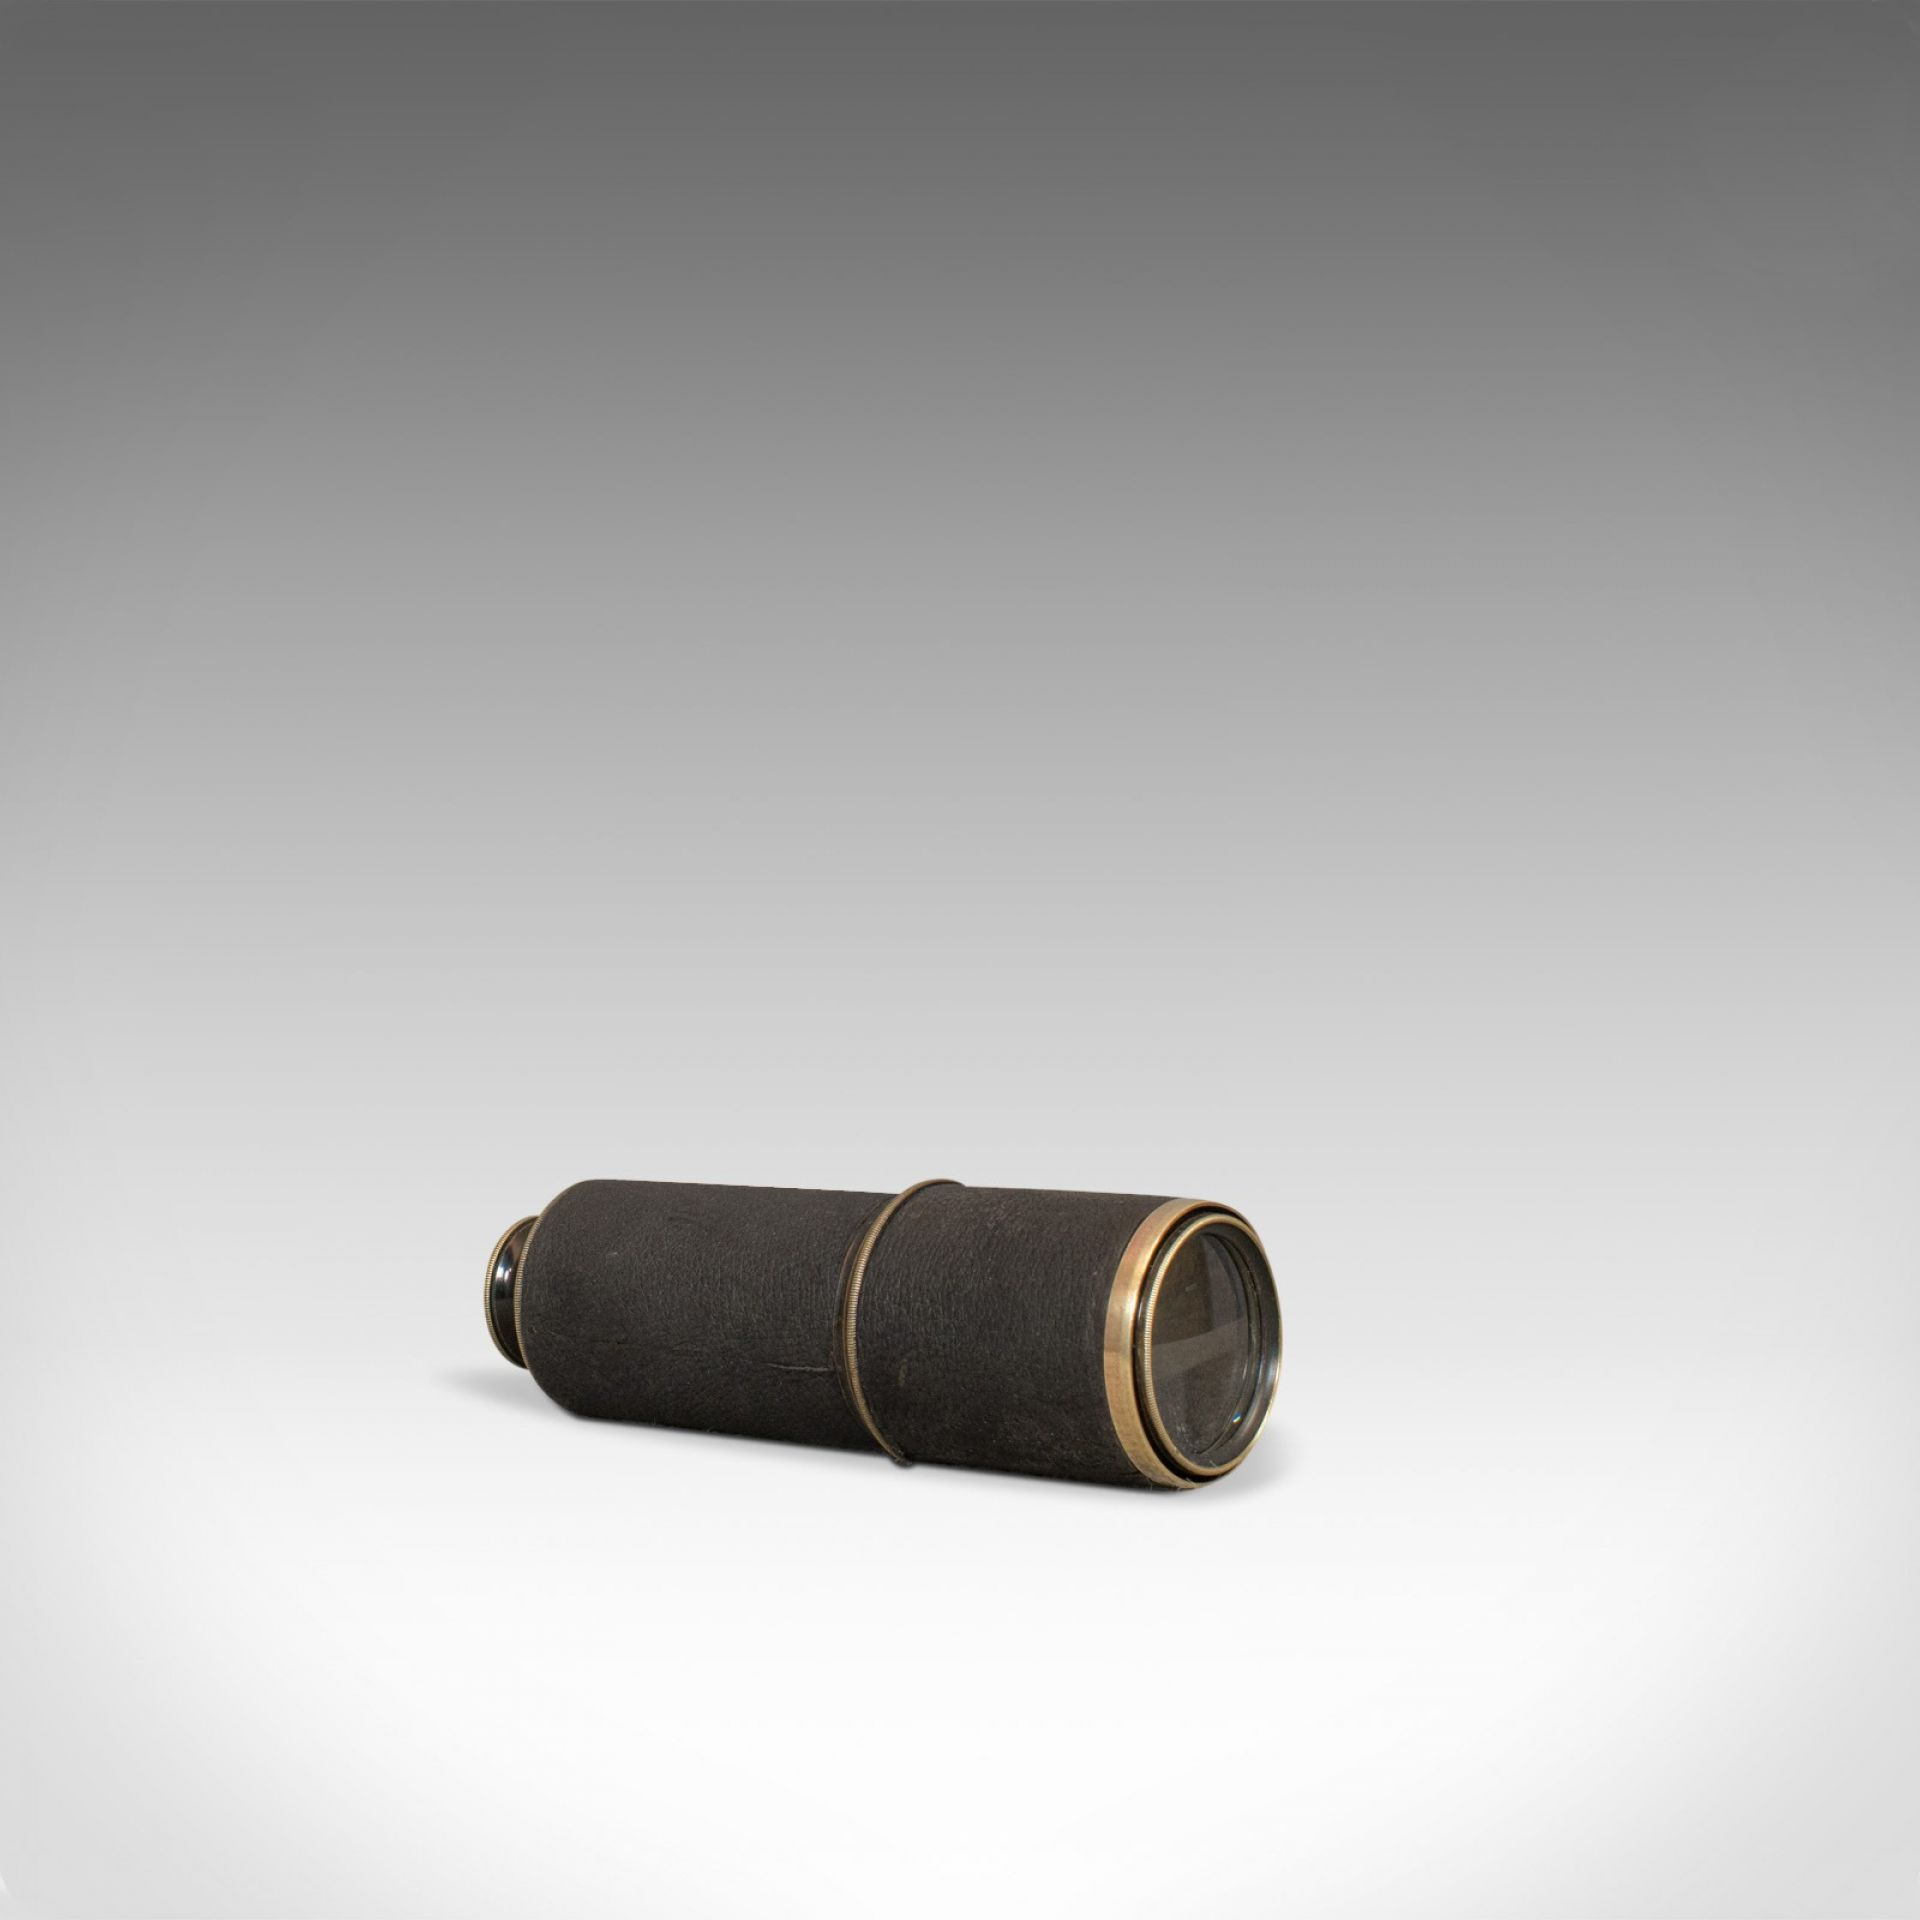 Vintage Stalking Telescope, English, Leather, Brass, Pocket, 3 Draw, Early C20th